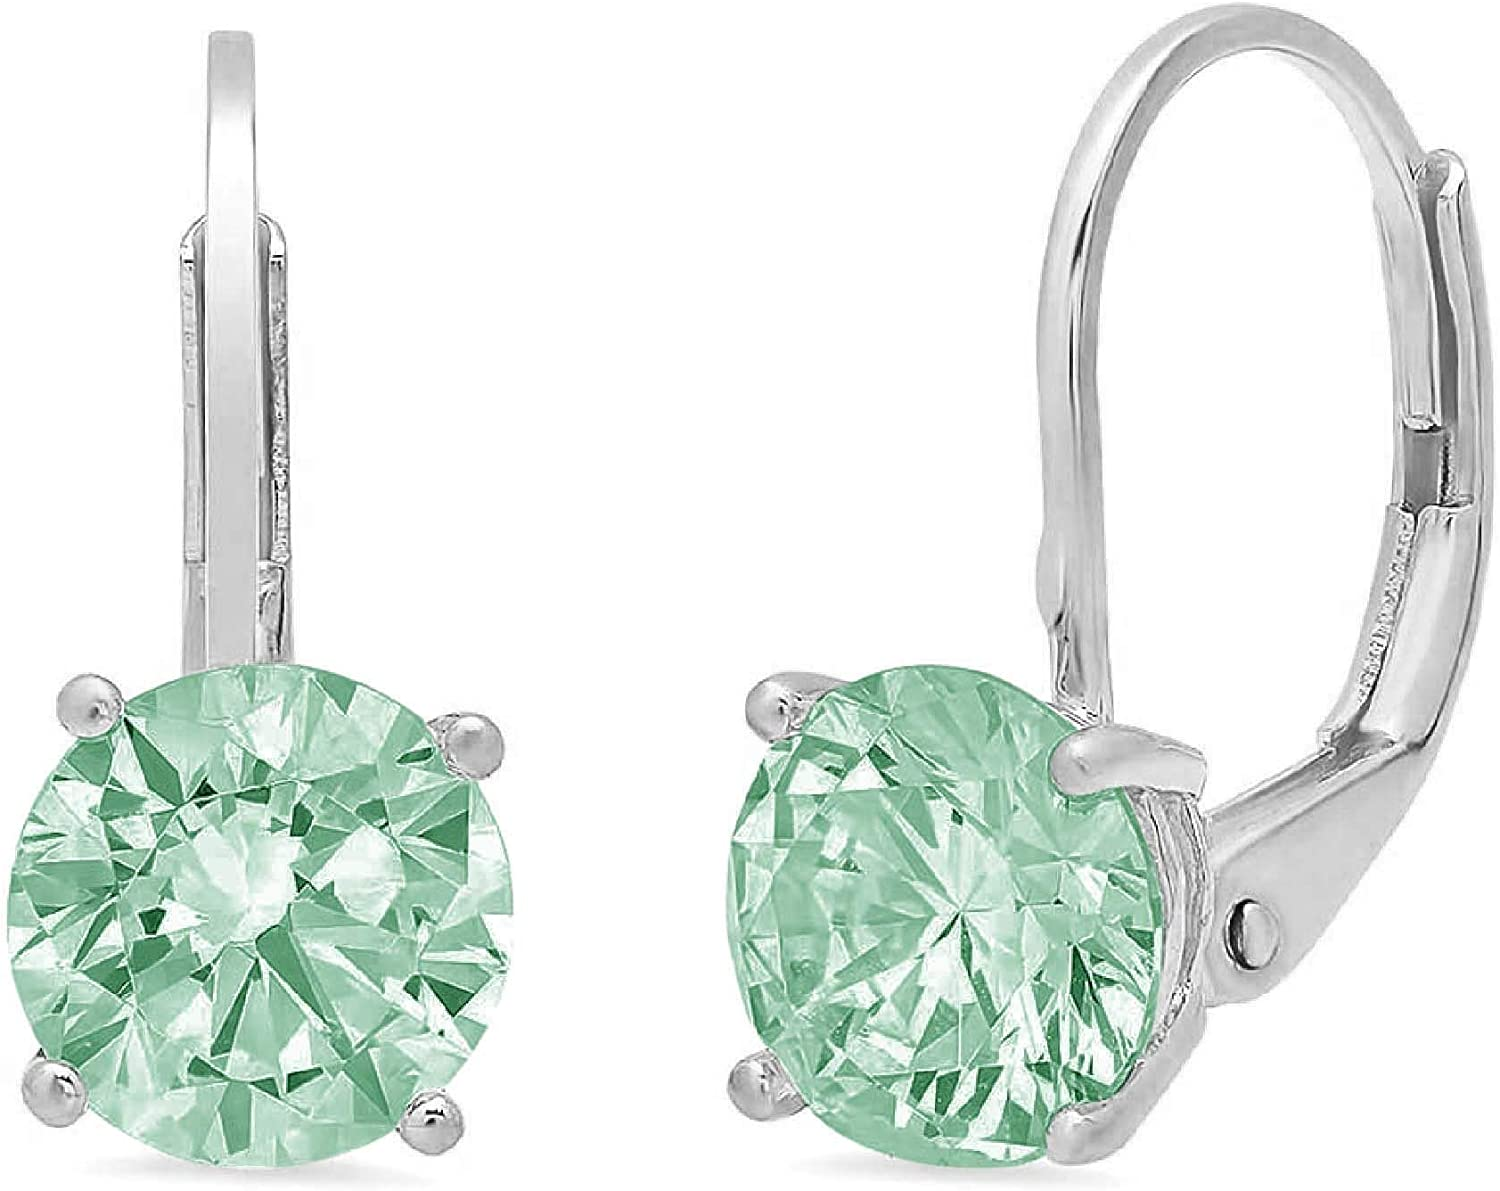 2.94cttw Brilliant Round Cut Solitaire Spring new work one after Store another Blue Moi Flawless Genuine